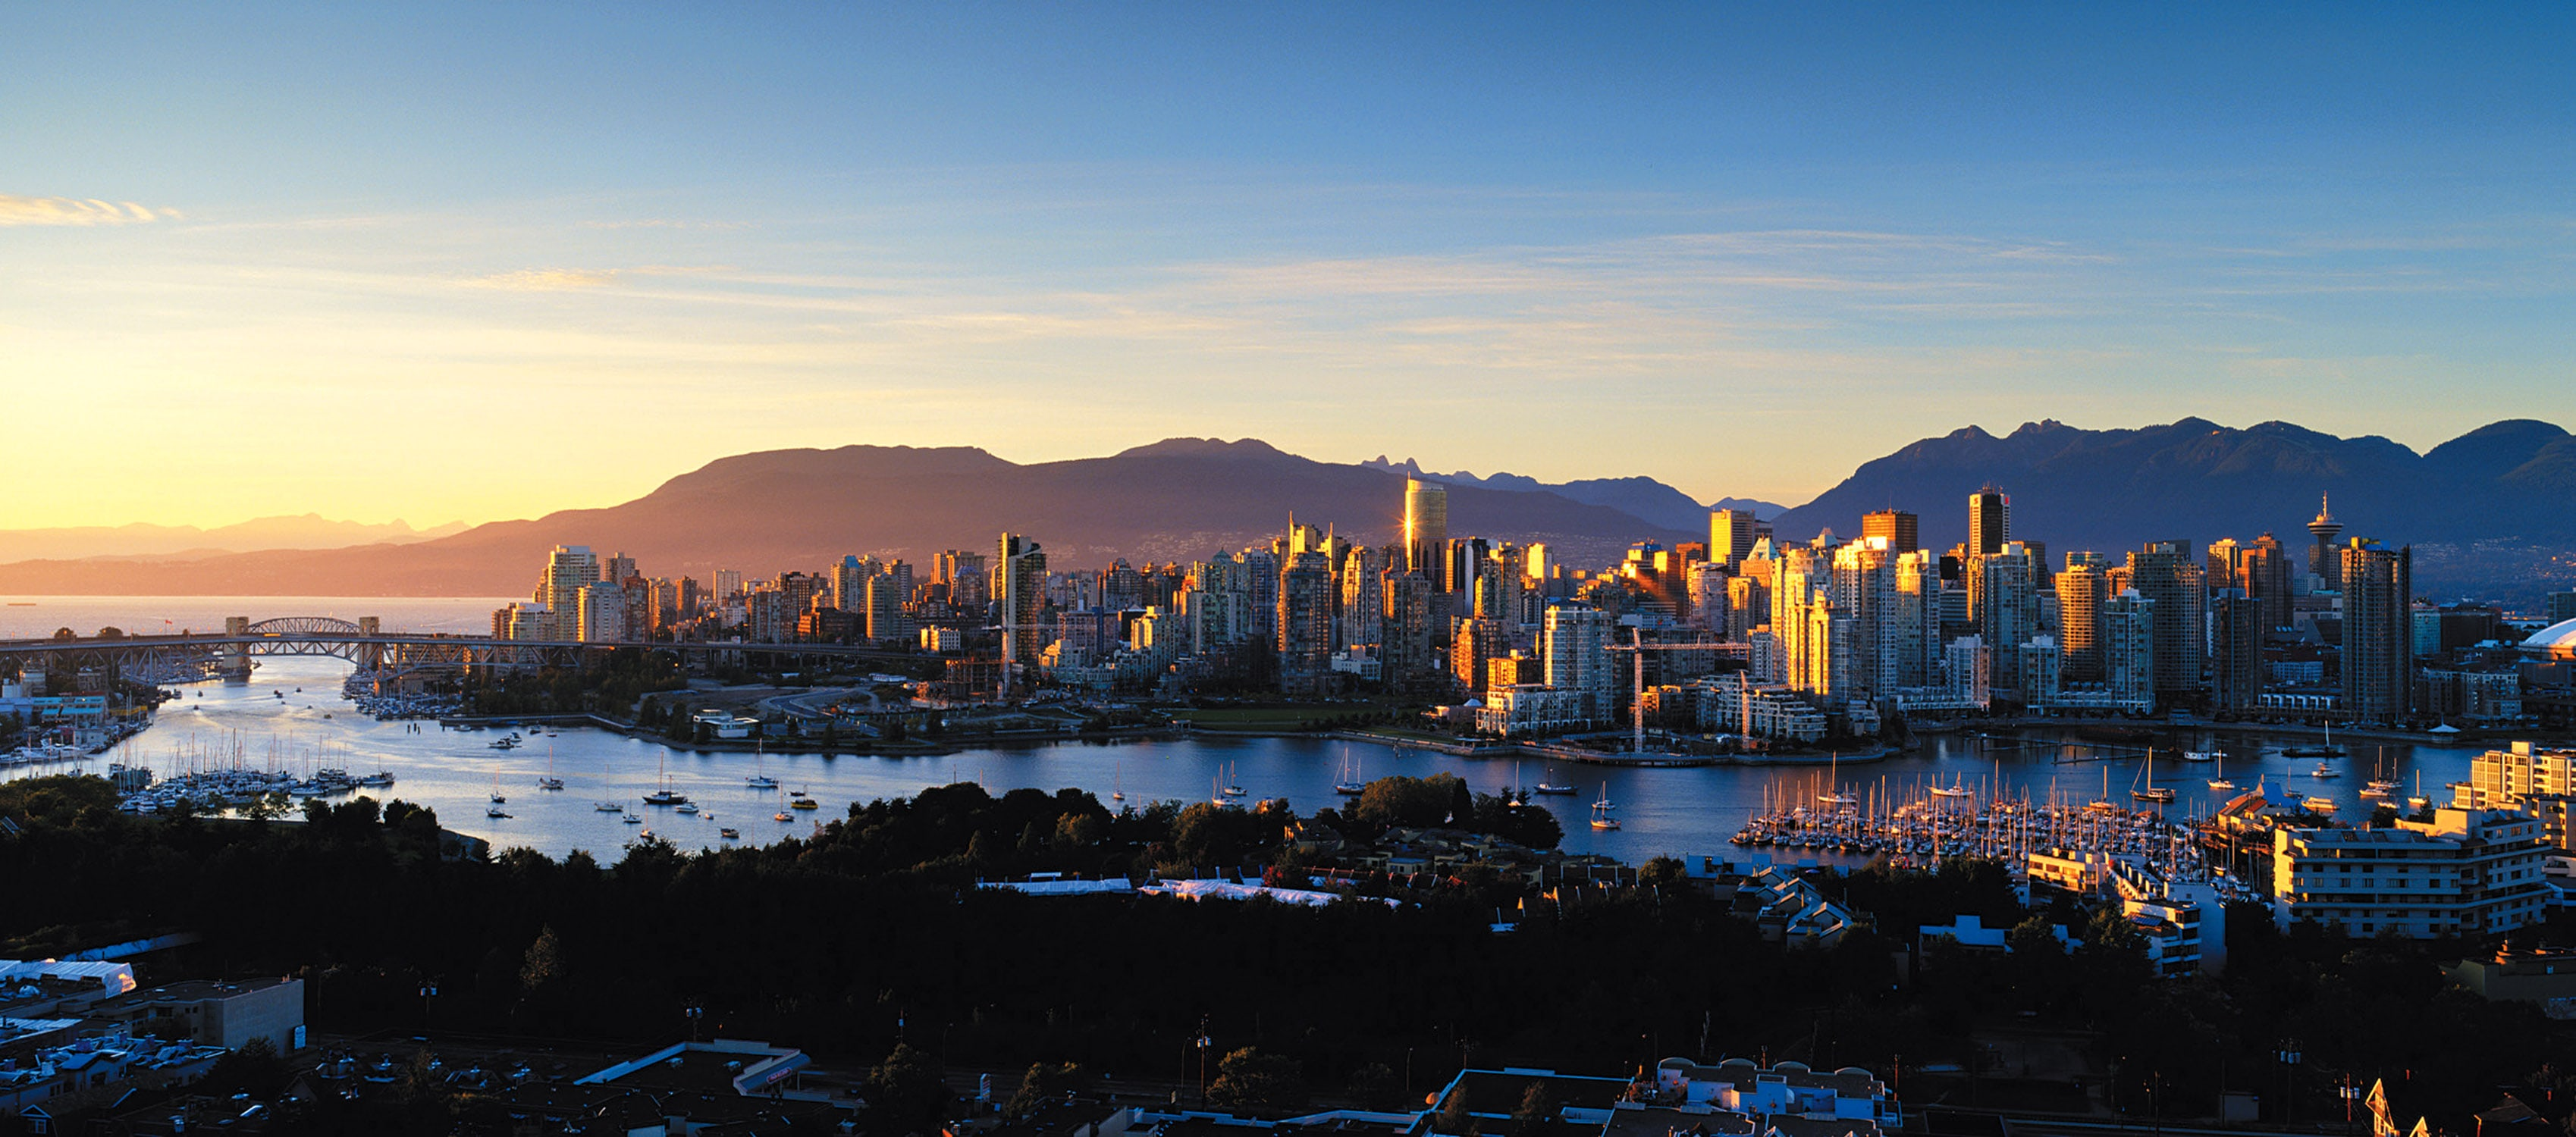 Vancouver Wallpapers 854VTY5 3397x1500 WallpapersExpertcom 3397x1500